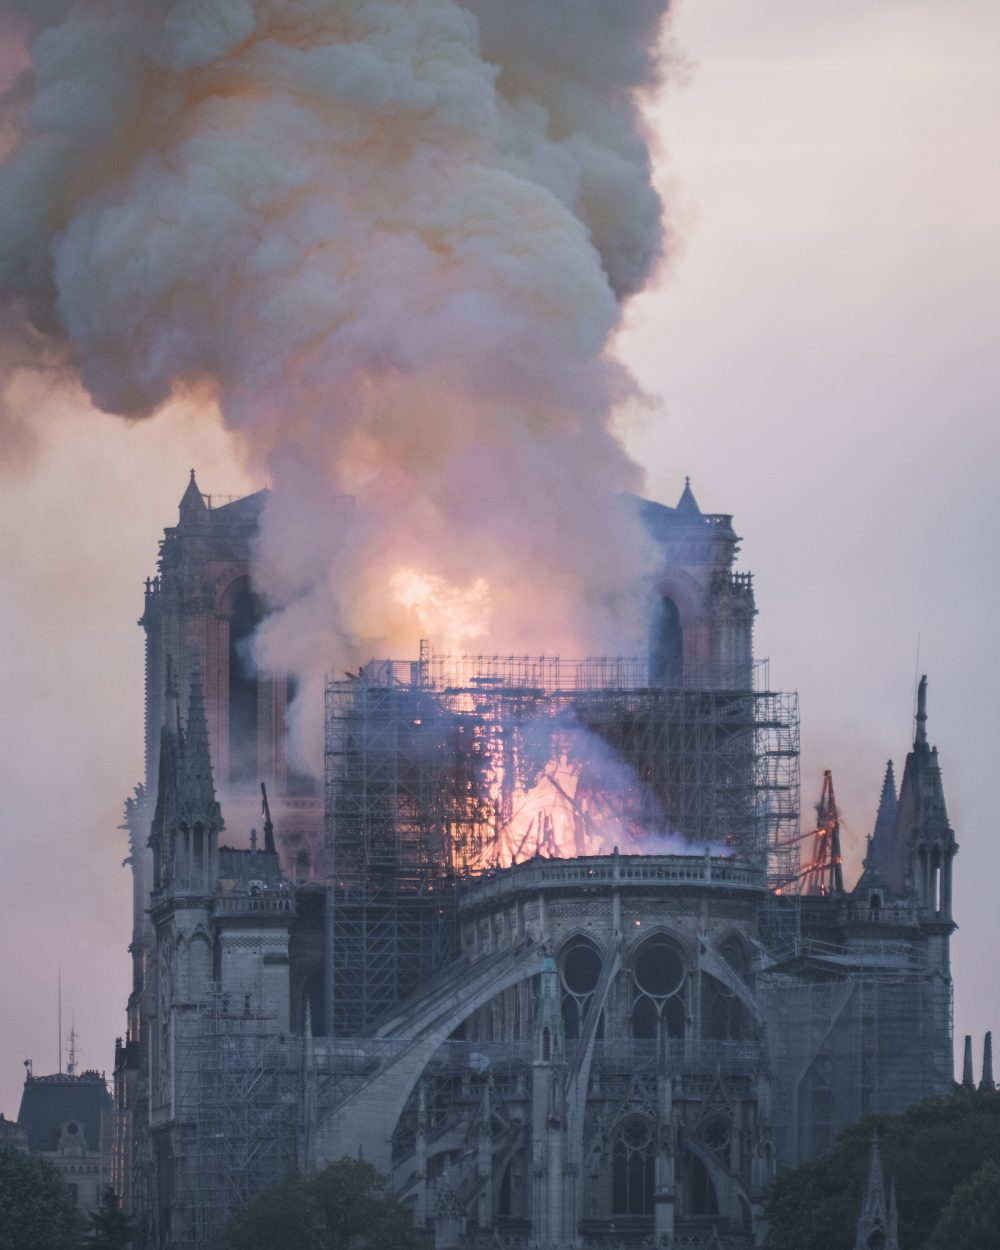 Iranian Baha'i Architect Farnaz Mansuri on the Notre Dame Cathedral Burning